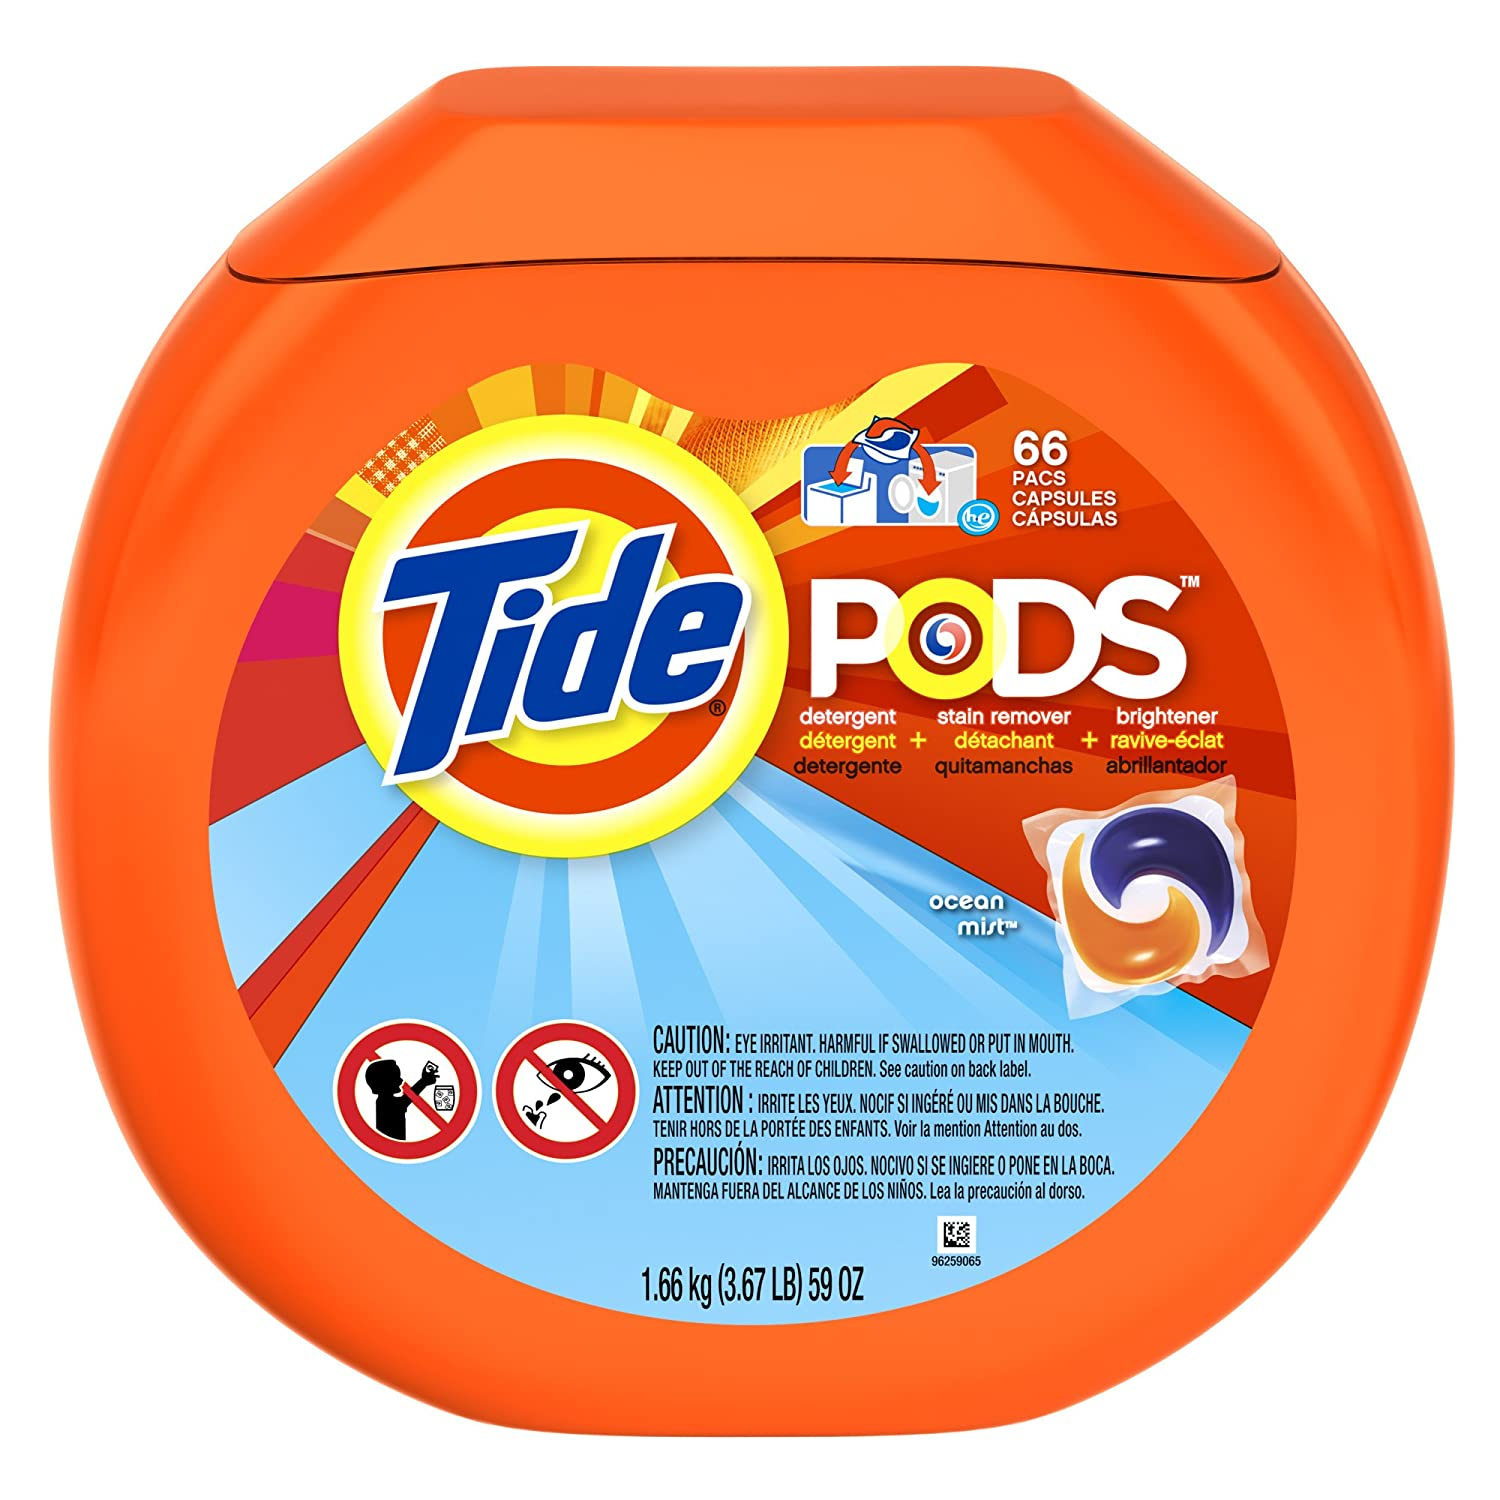 Tide Pods Detergent Ocean Mist 66 Loads 1 Tub, 66 CT (Pack of 4): Amazon.com: Grocery & Gourmet Food